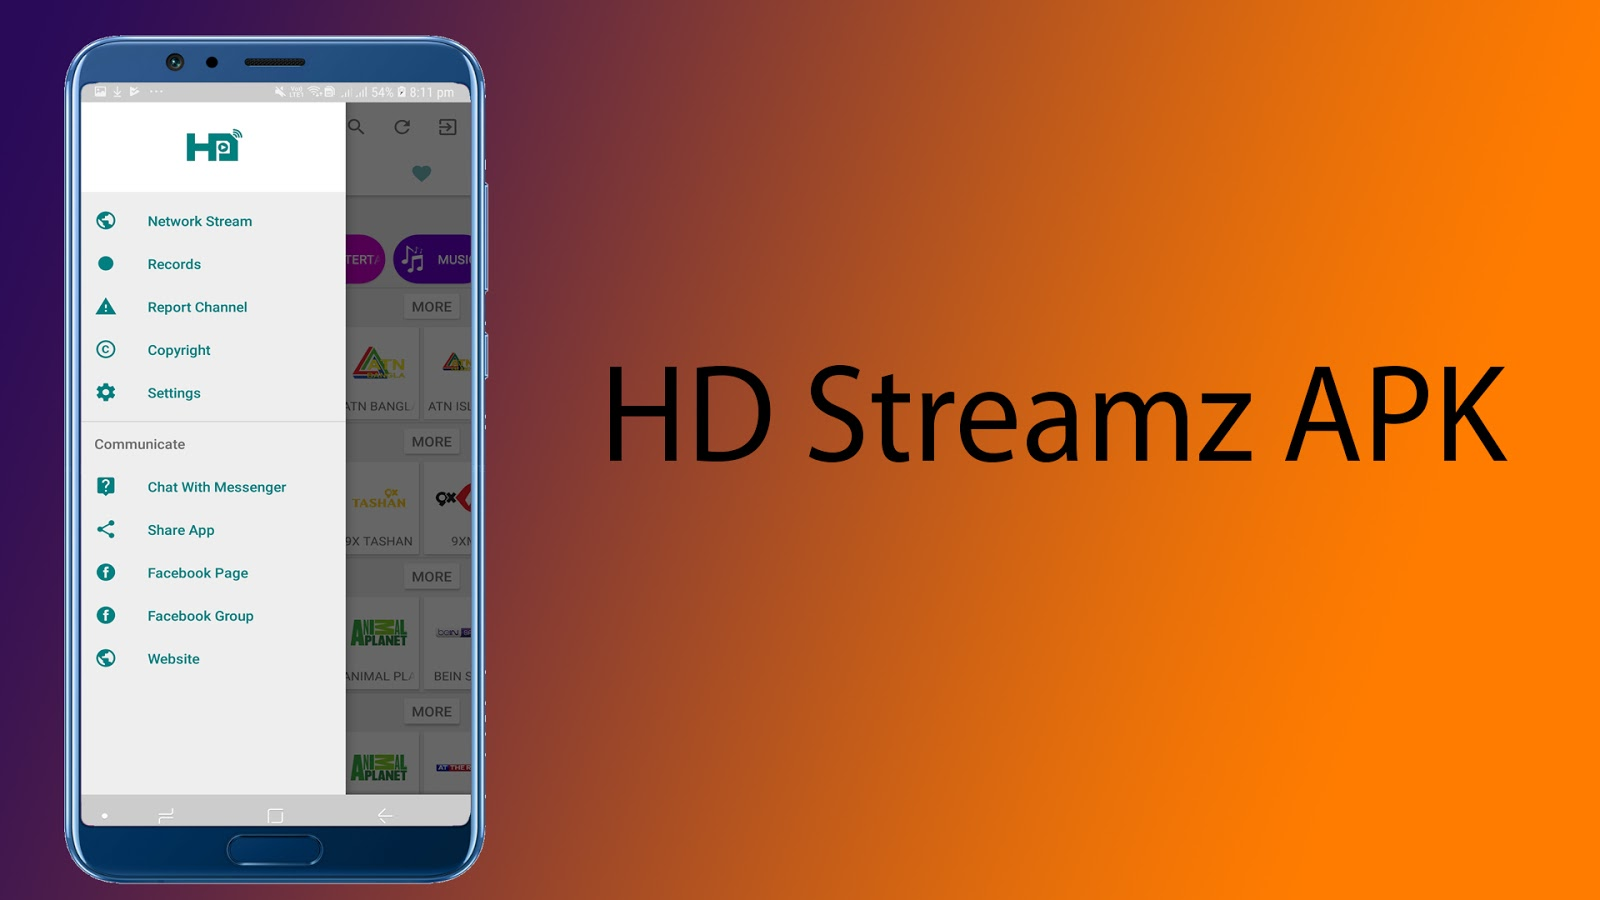 HD Streamz APK for Android - free - latest version - Android